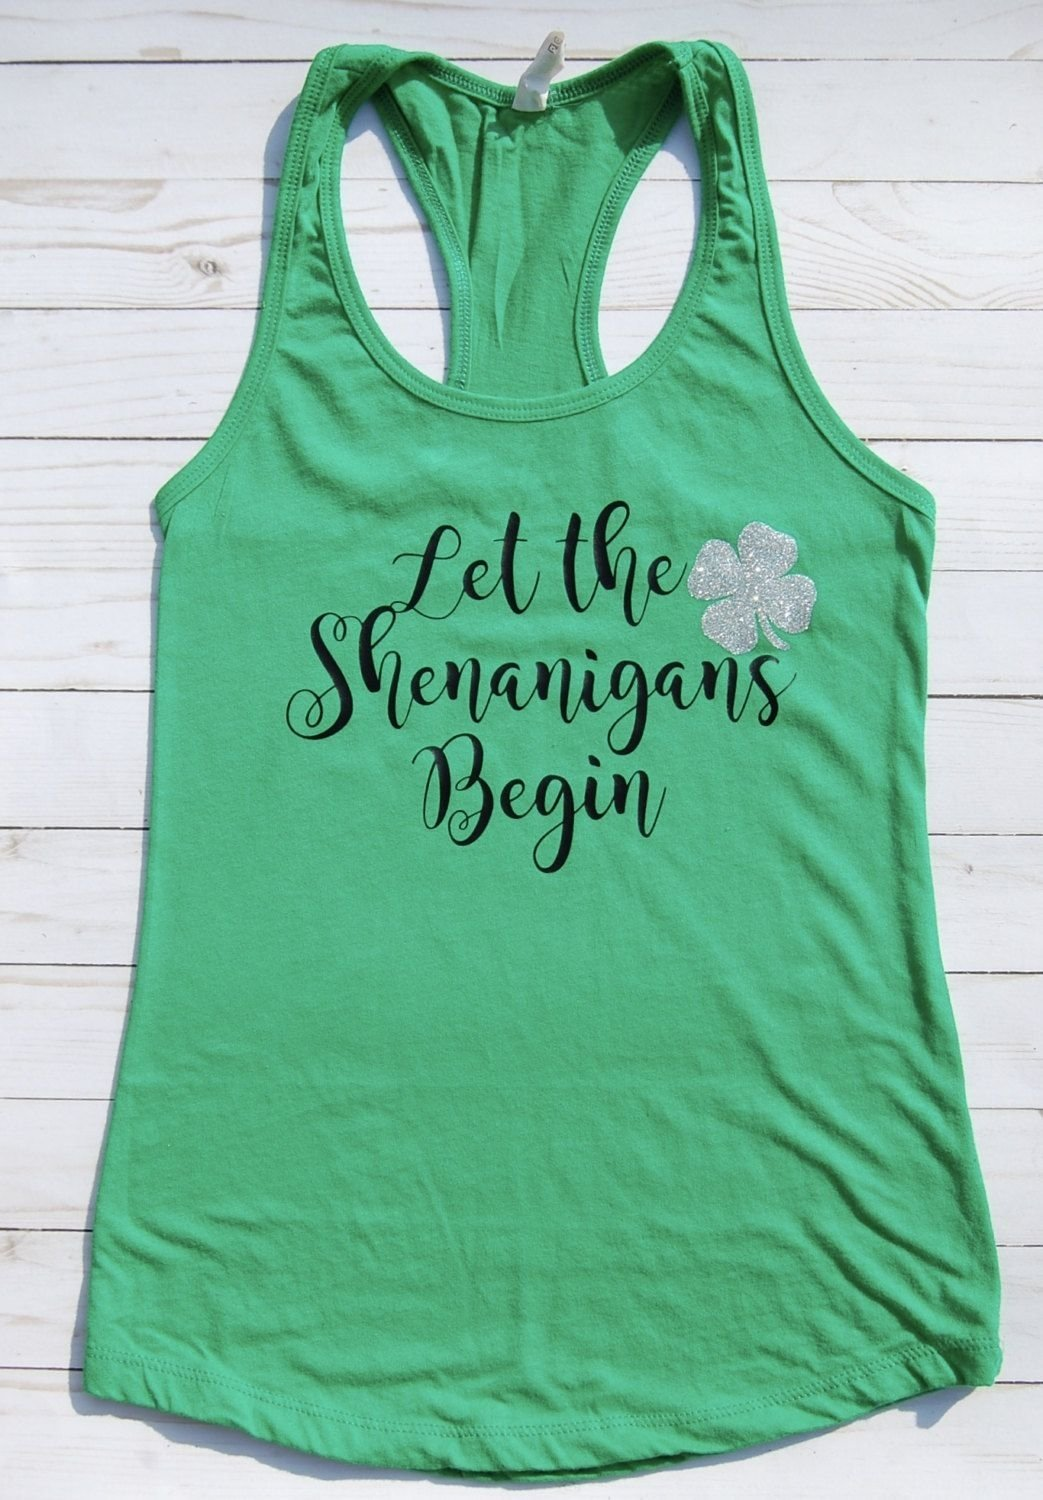 10 Wonderful St Patricks Day Shirt Ideas let the shenanigans begin st patricks day shirt st pattys day